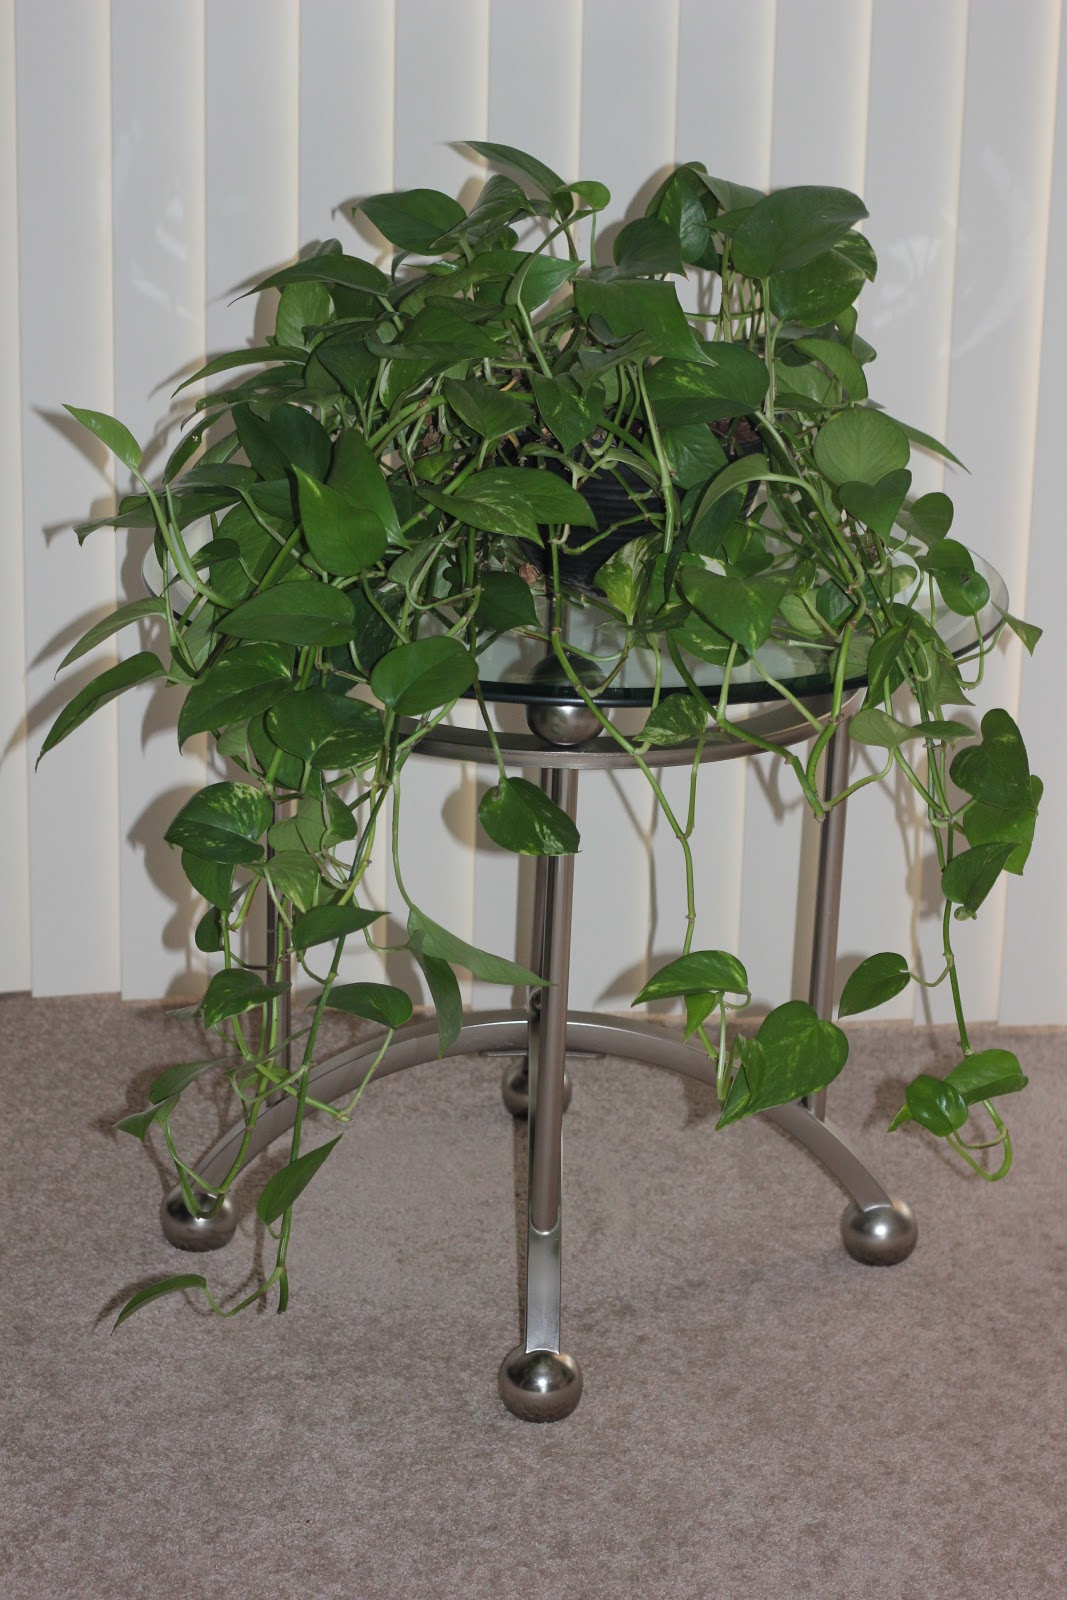 Golden Potho's houseplant for removing toxic chemicals from indoor buildings for cleaner air.